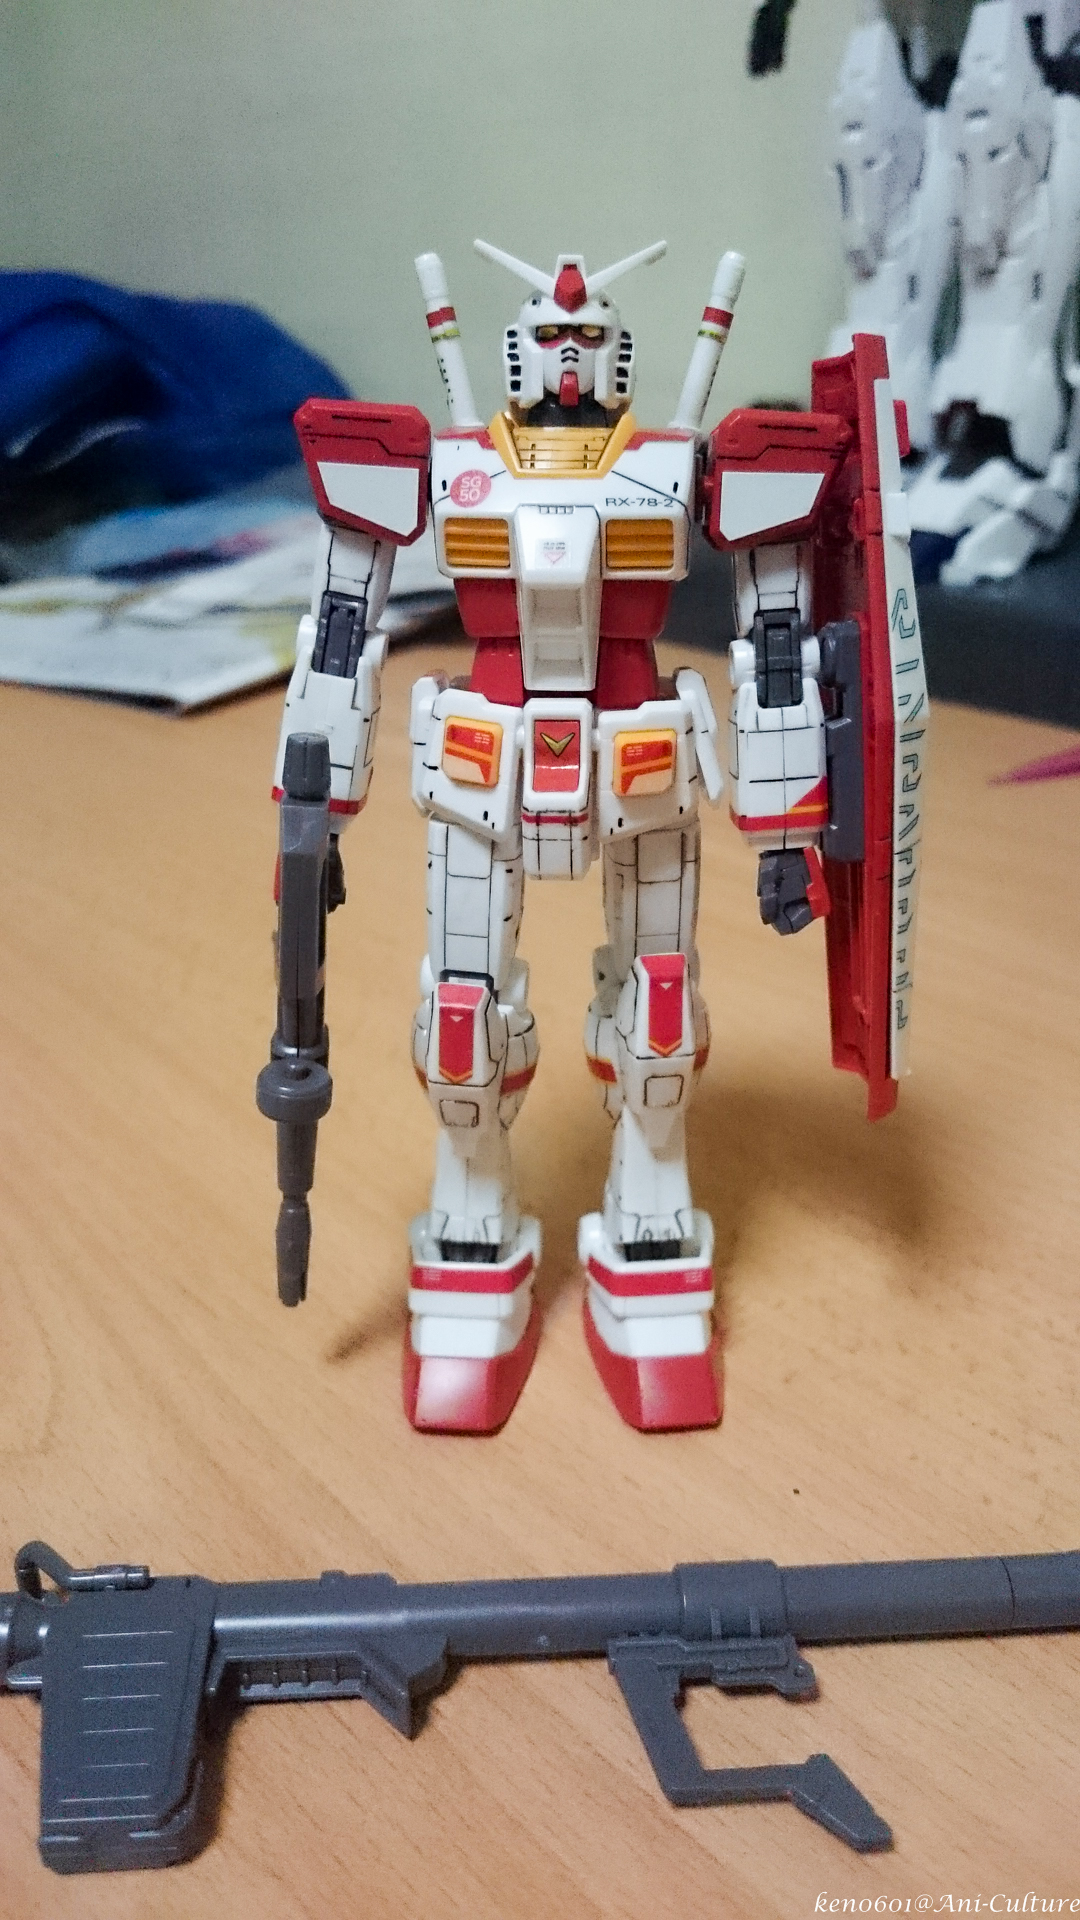 Gundam Docks at Singapore exclusive SG50 HG RX-78-2.